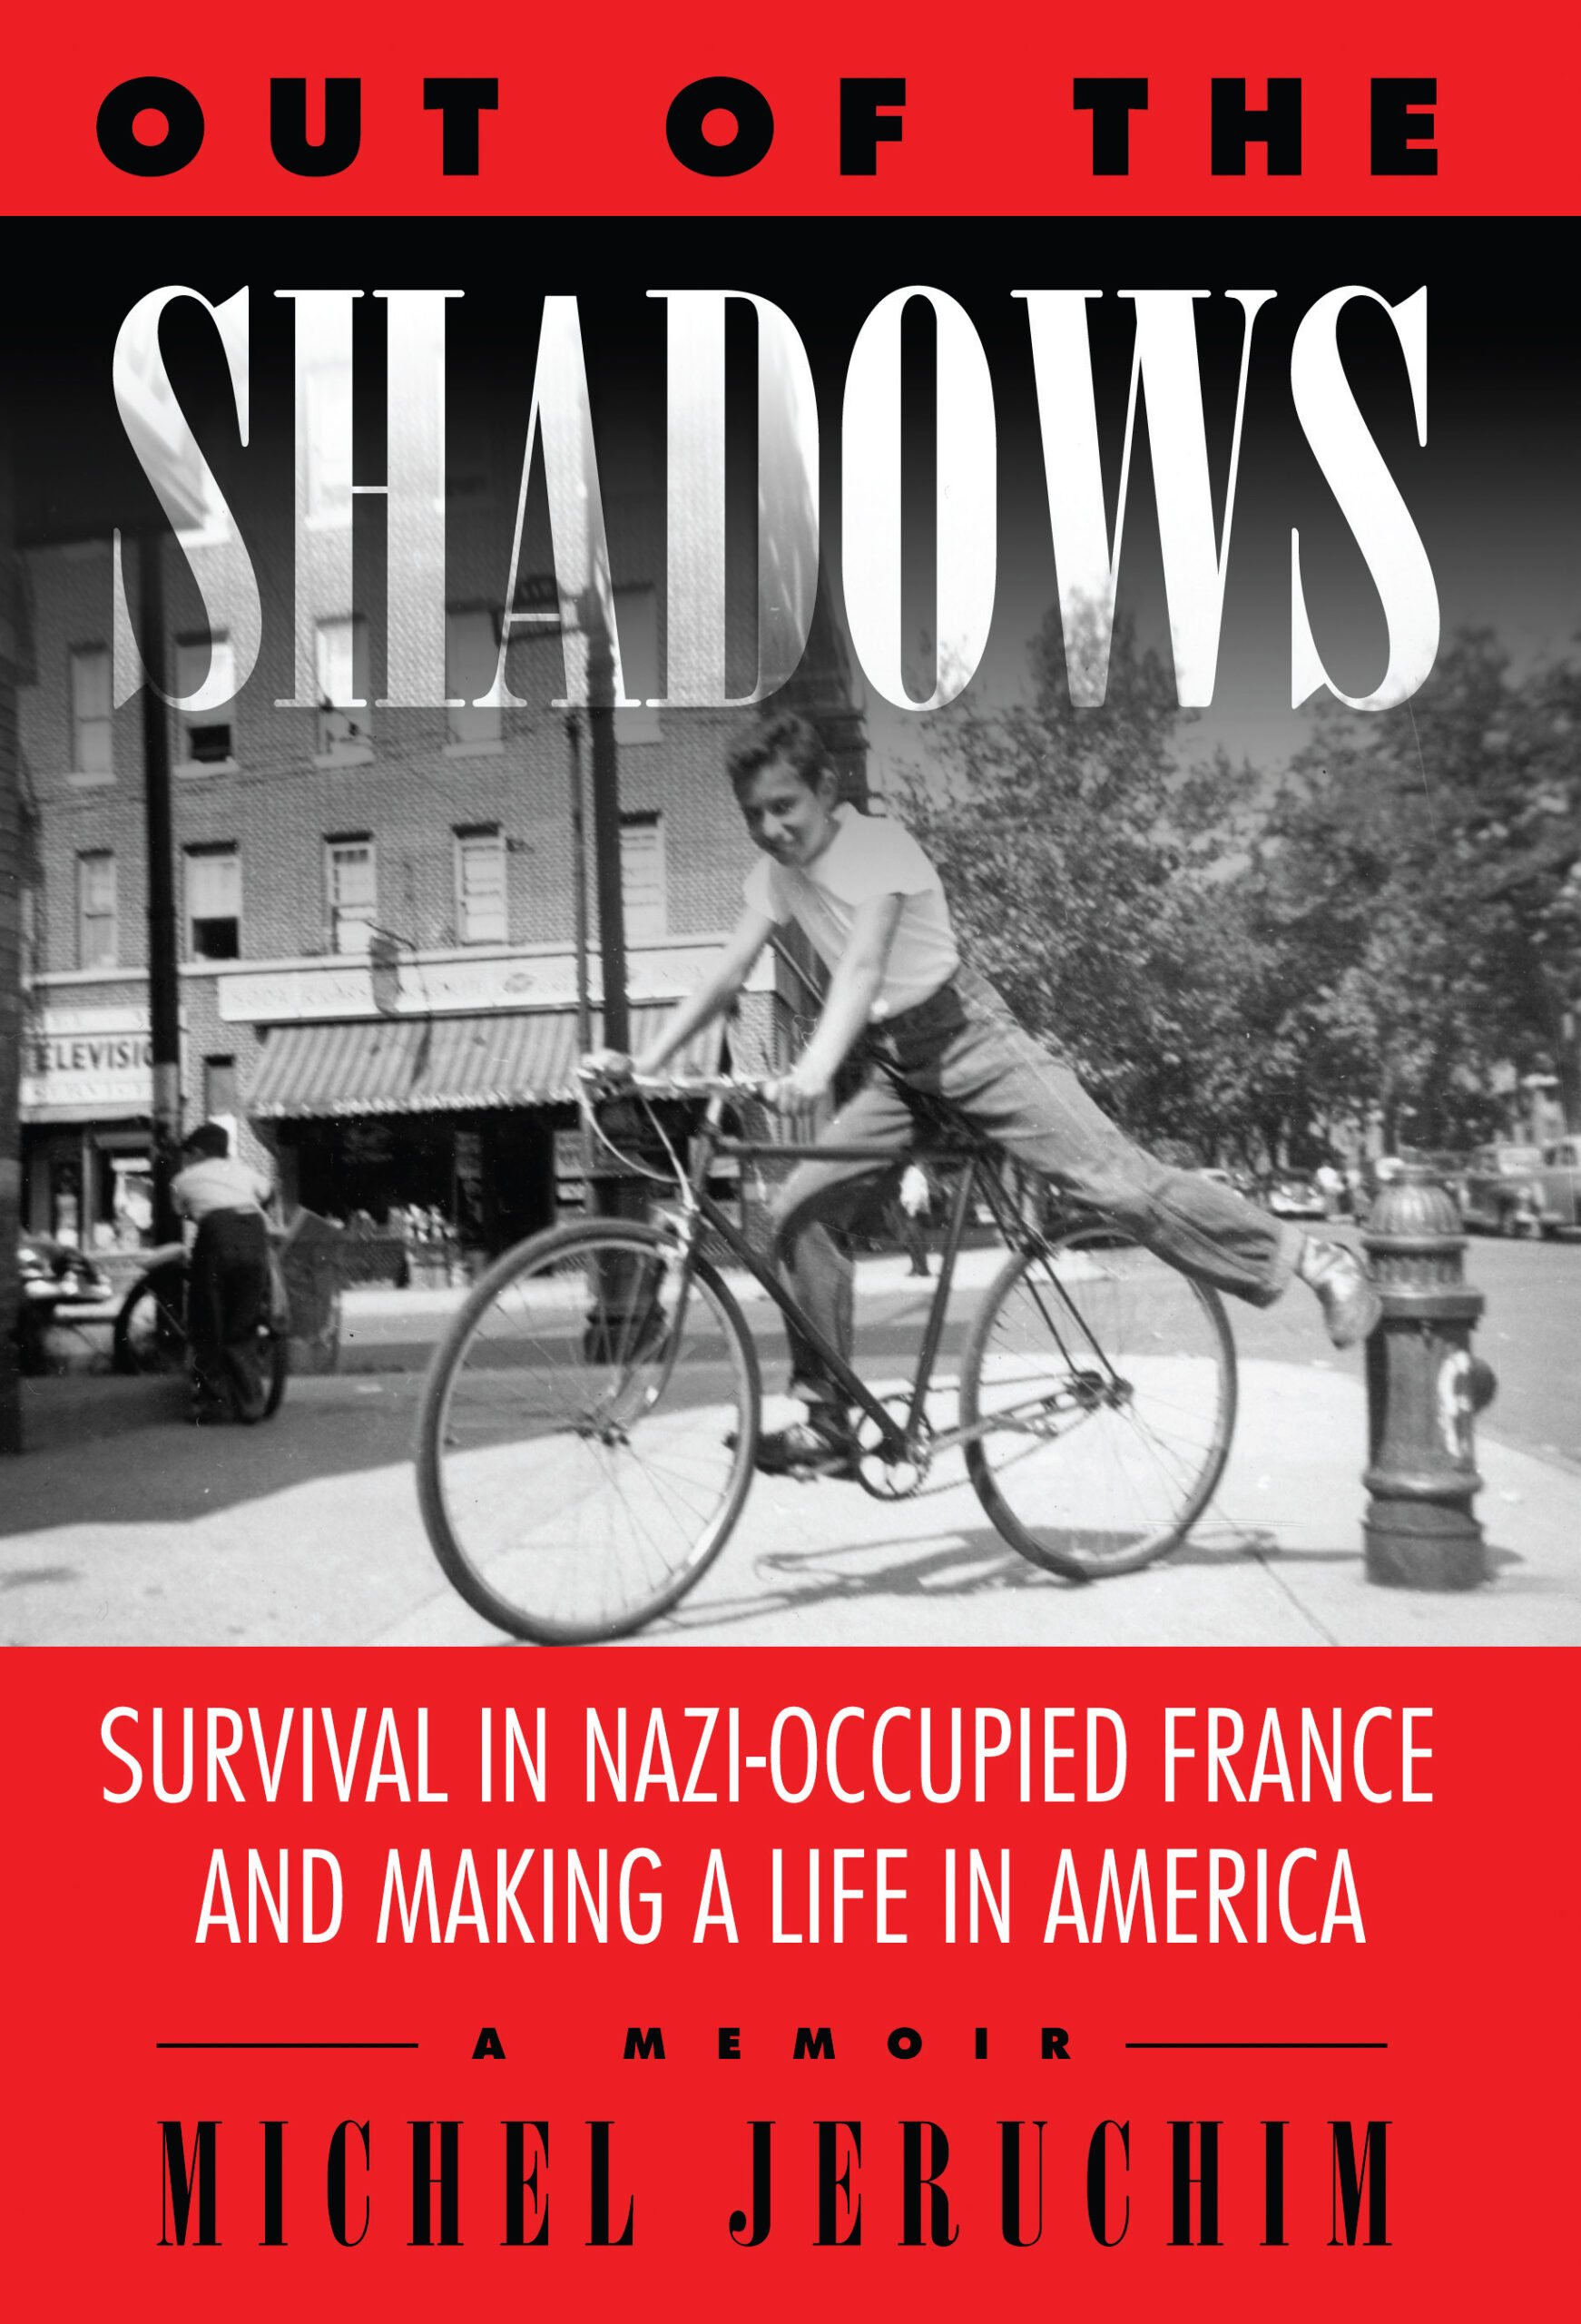 Out of the Shadows by Michel Jeruchim